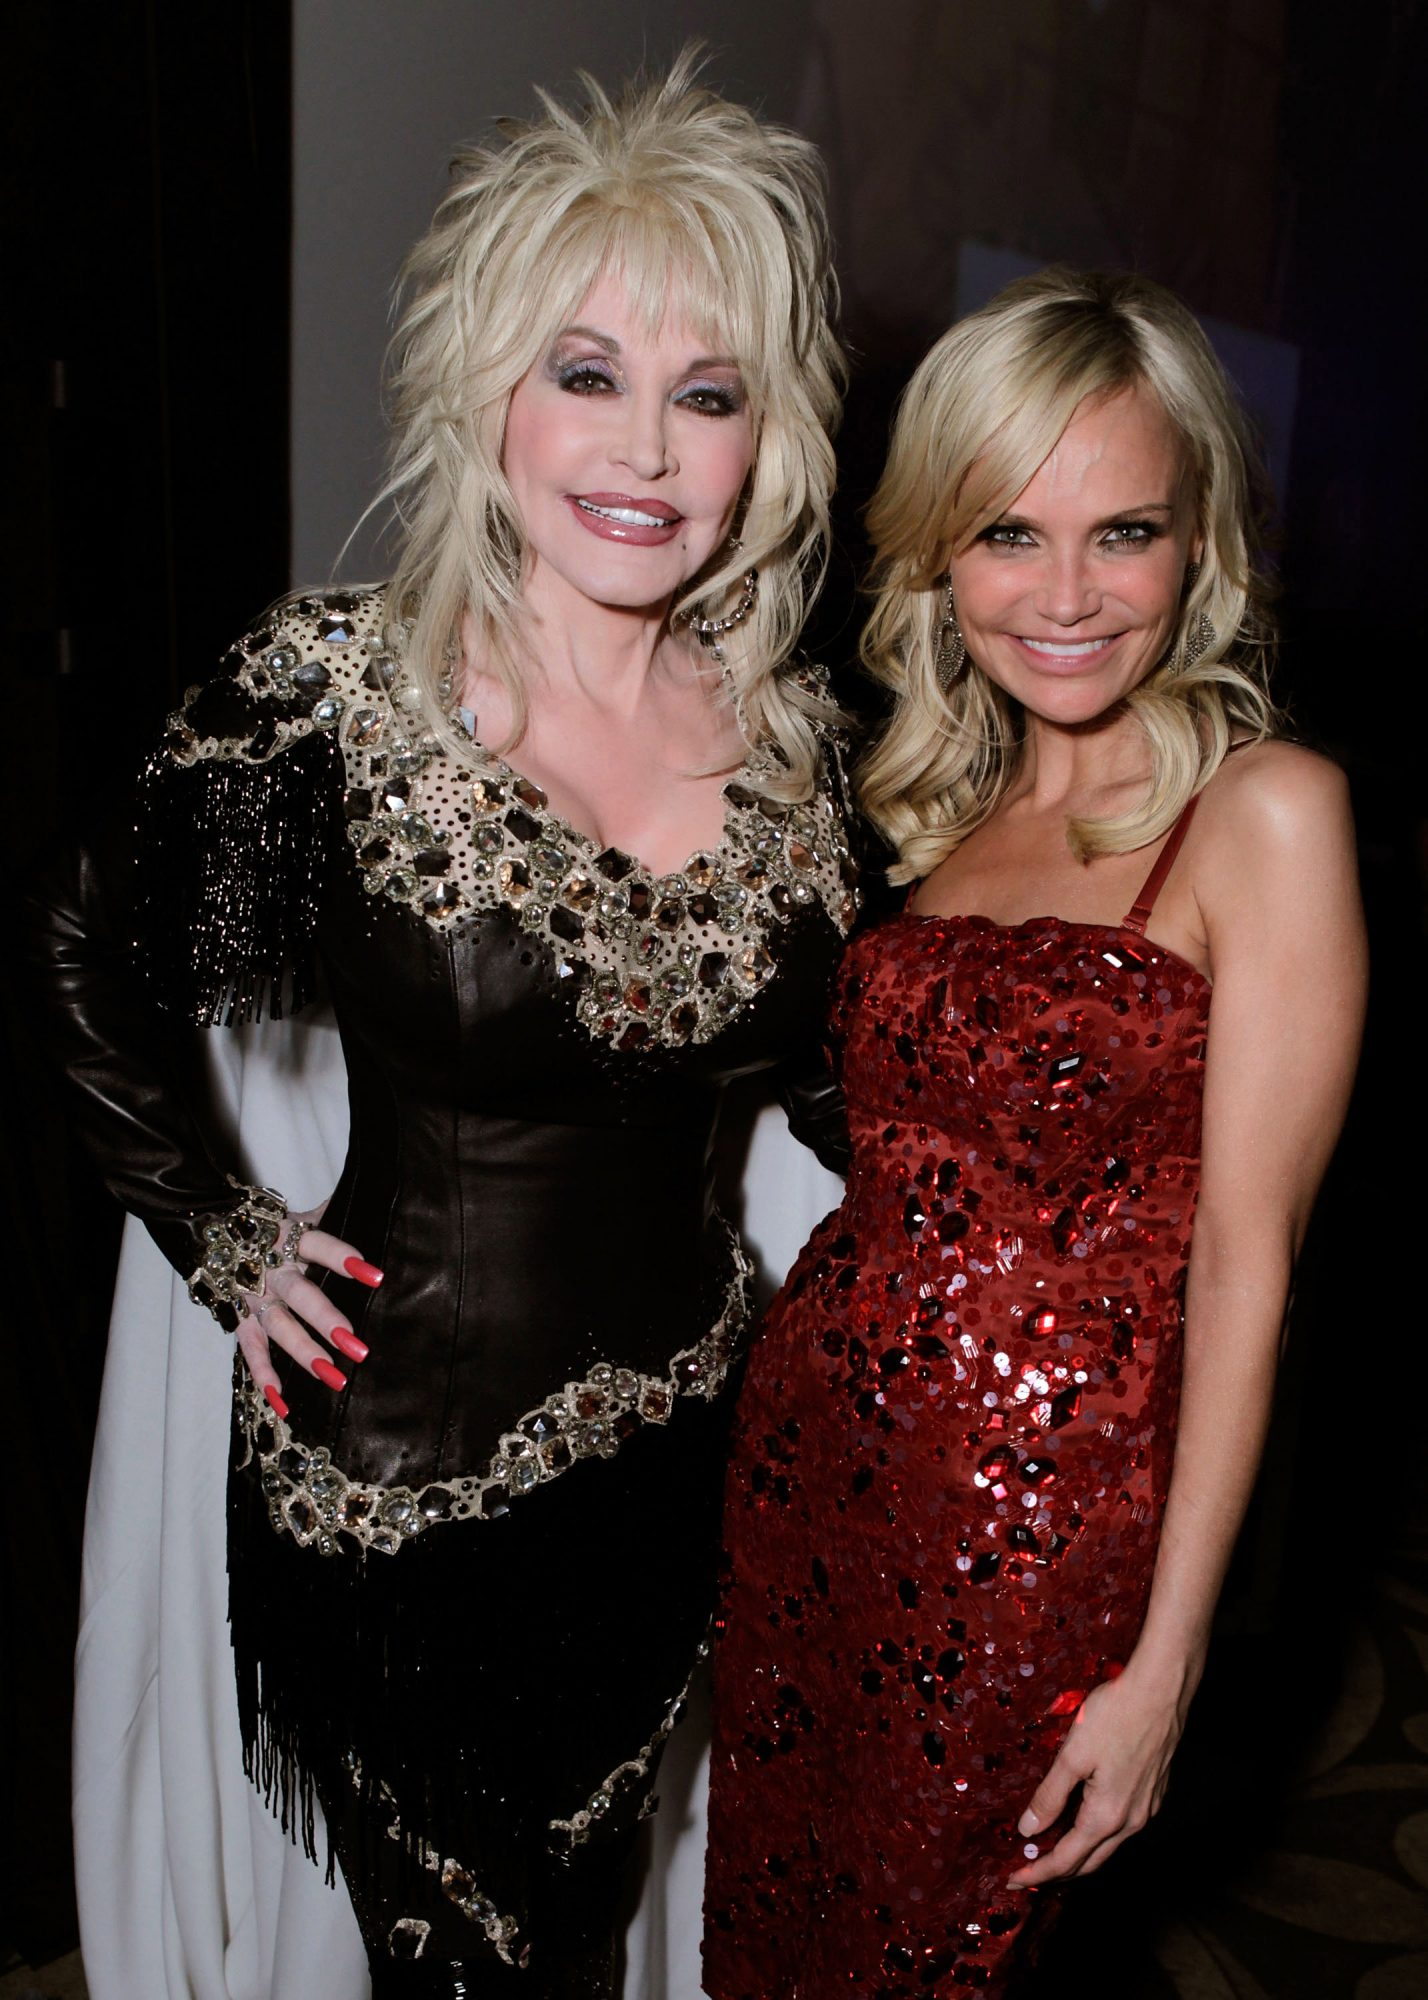 Dolly Parton and Kristin Chenoweth